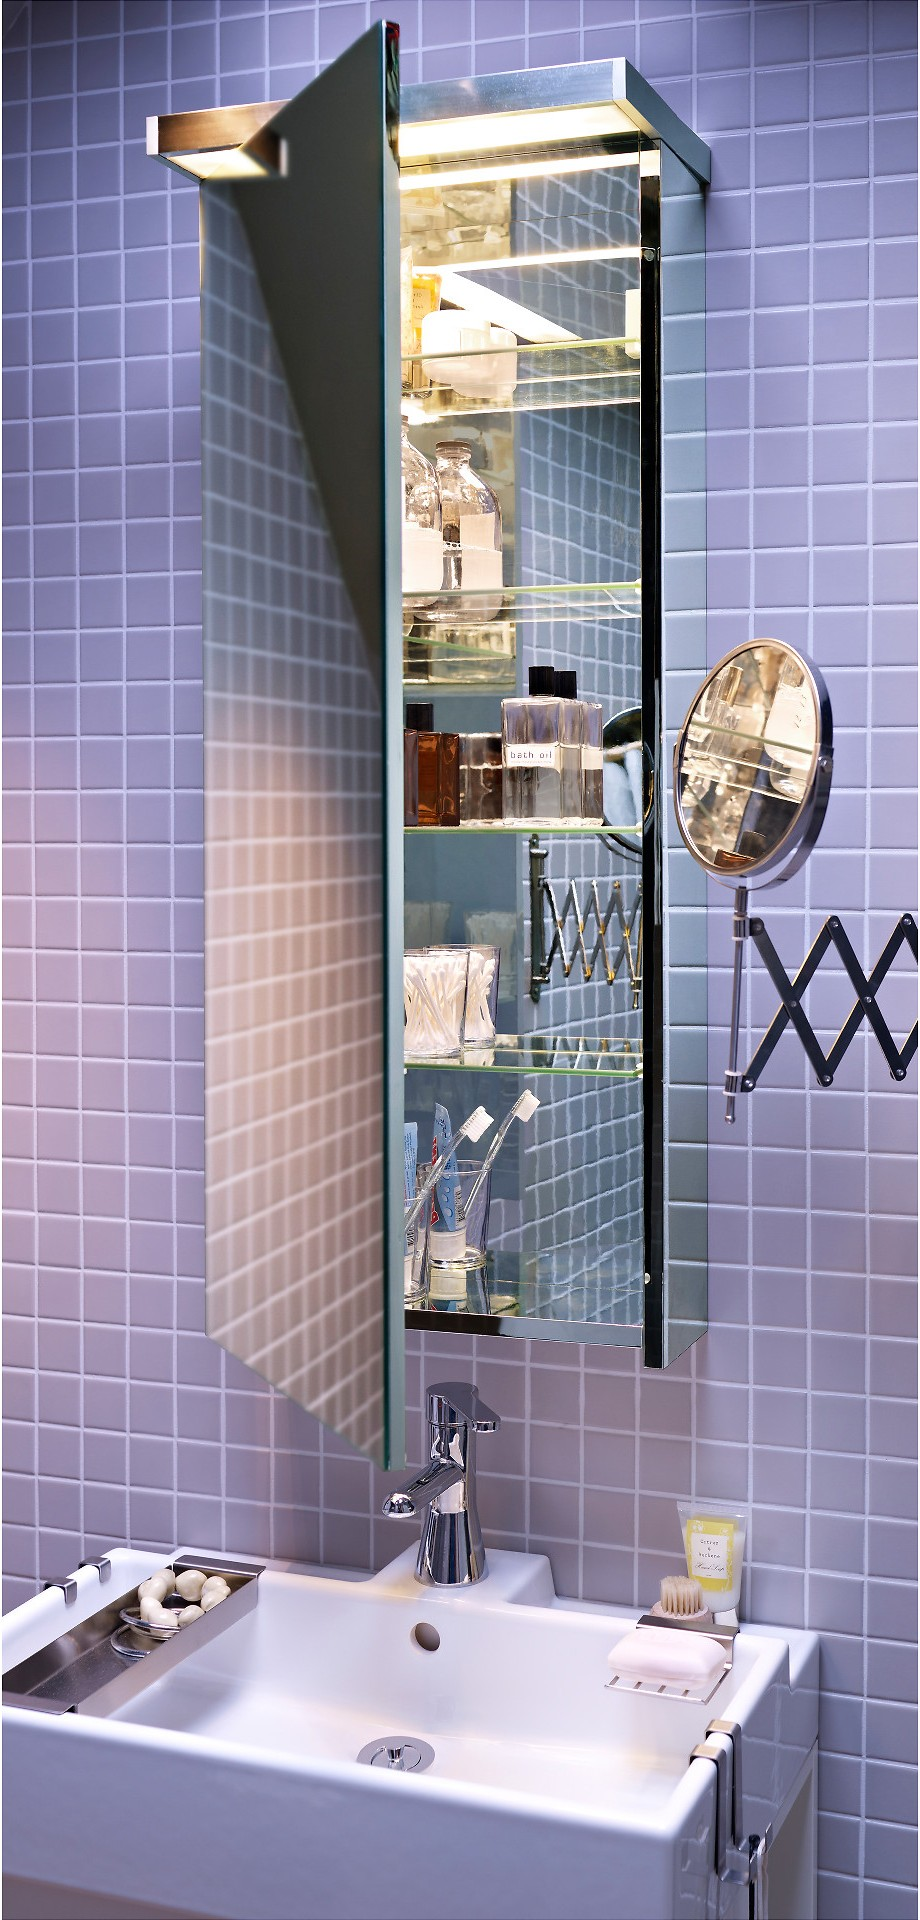 An IKEA GODMORGON, which is a big storage cabinet with four adjustable shelves and a dual-side mirror, is mounted to a tiled bathroom wall.